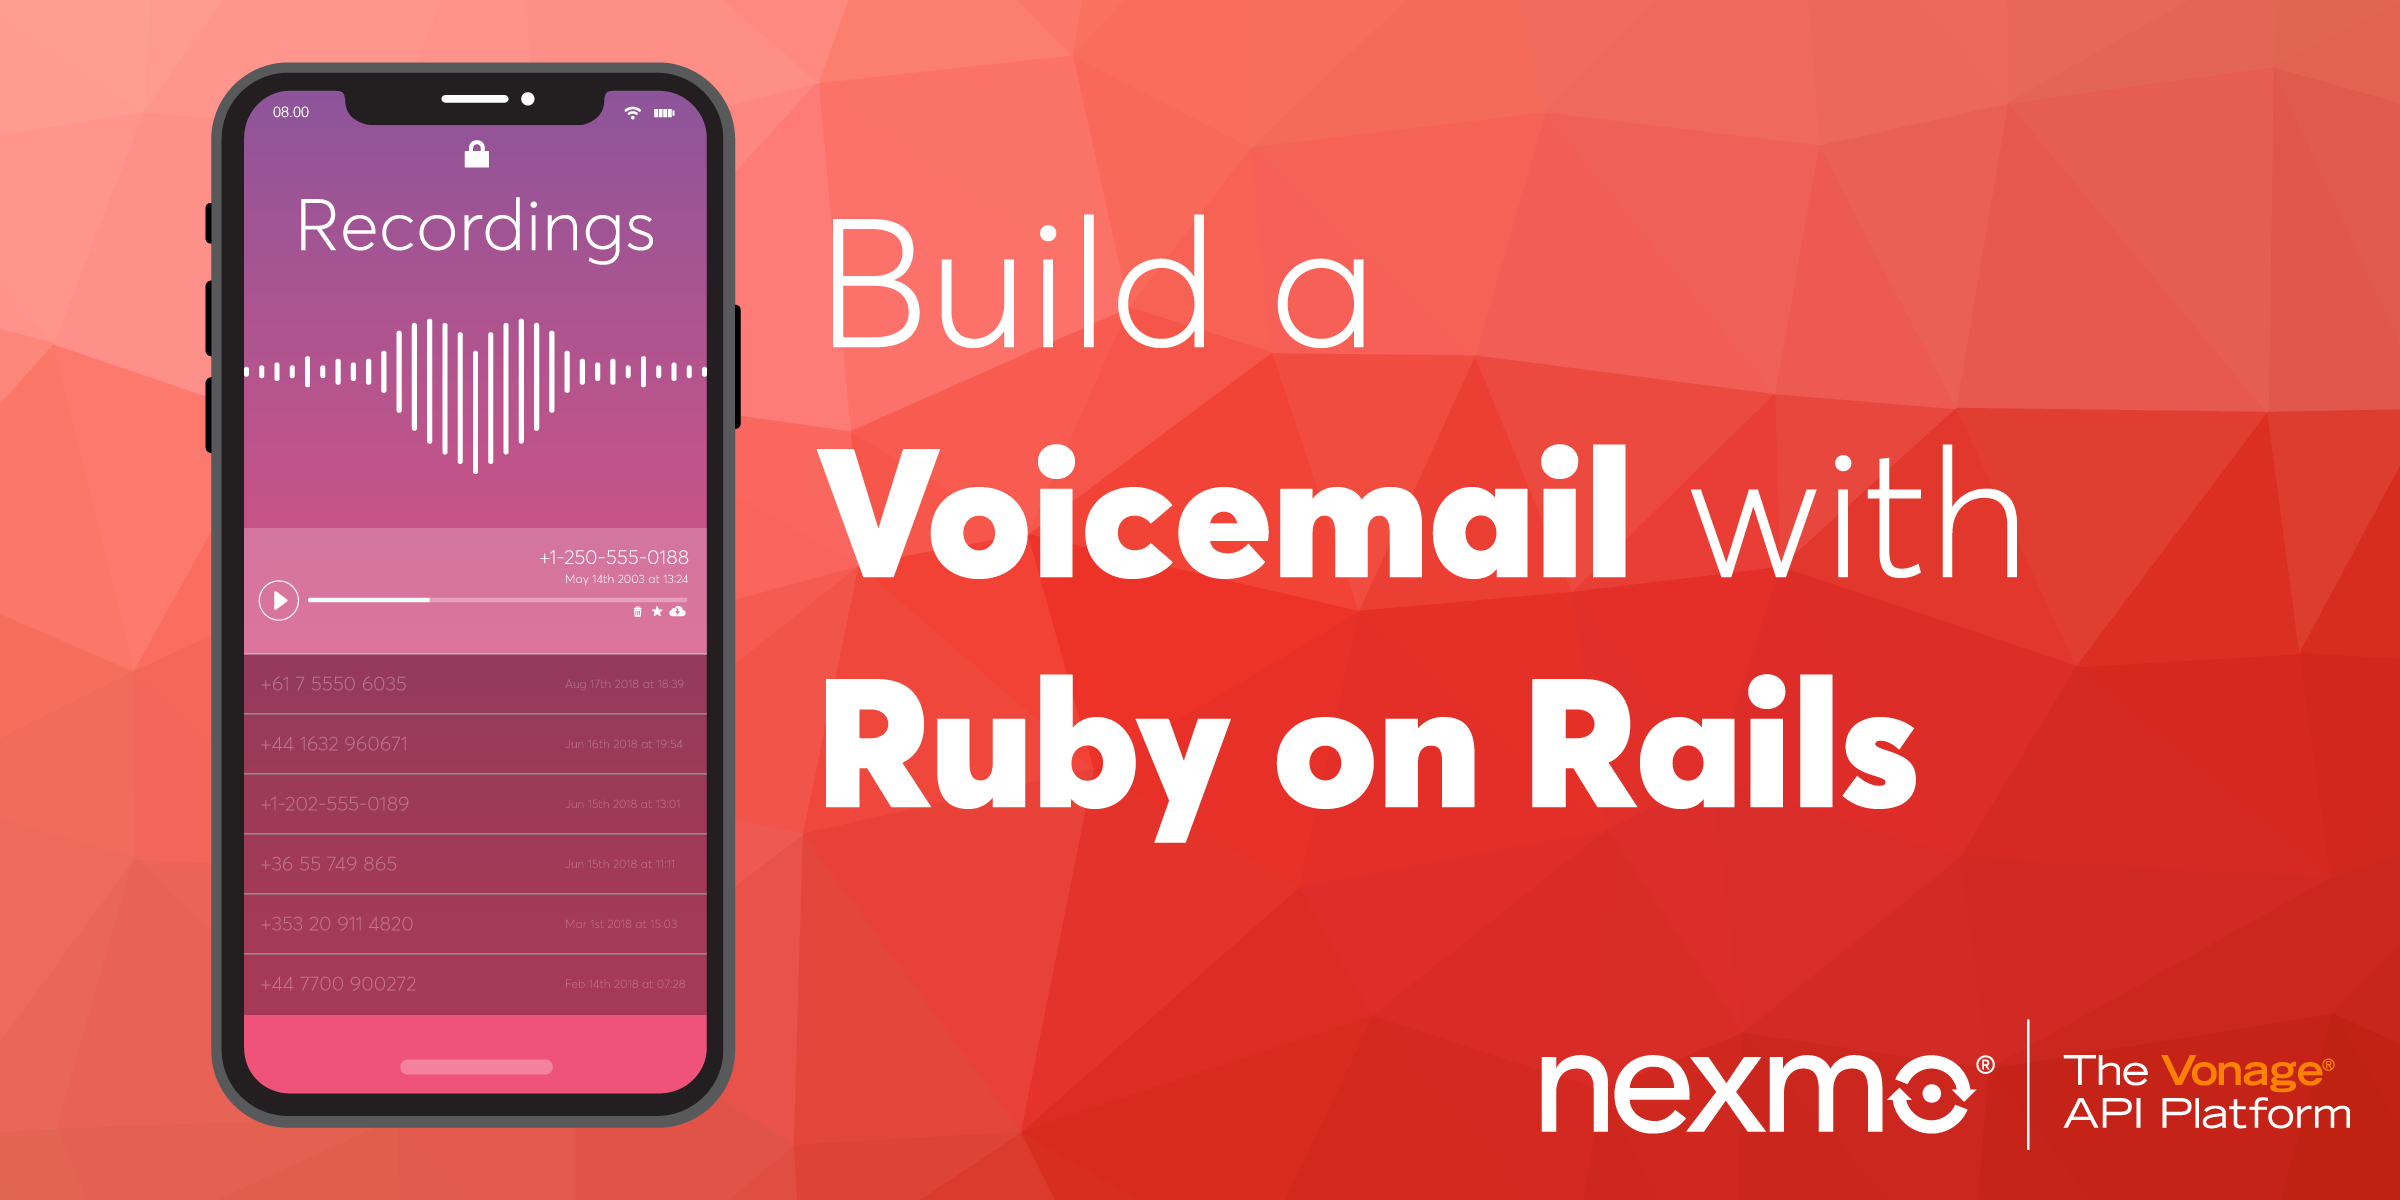 Build a Voicemail with Ruby on Rails